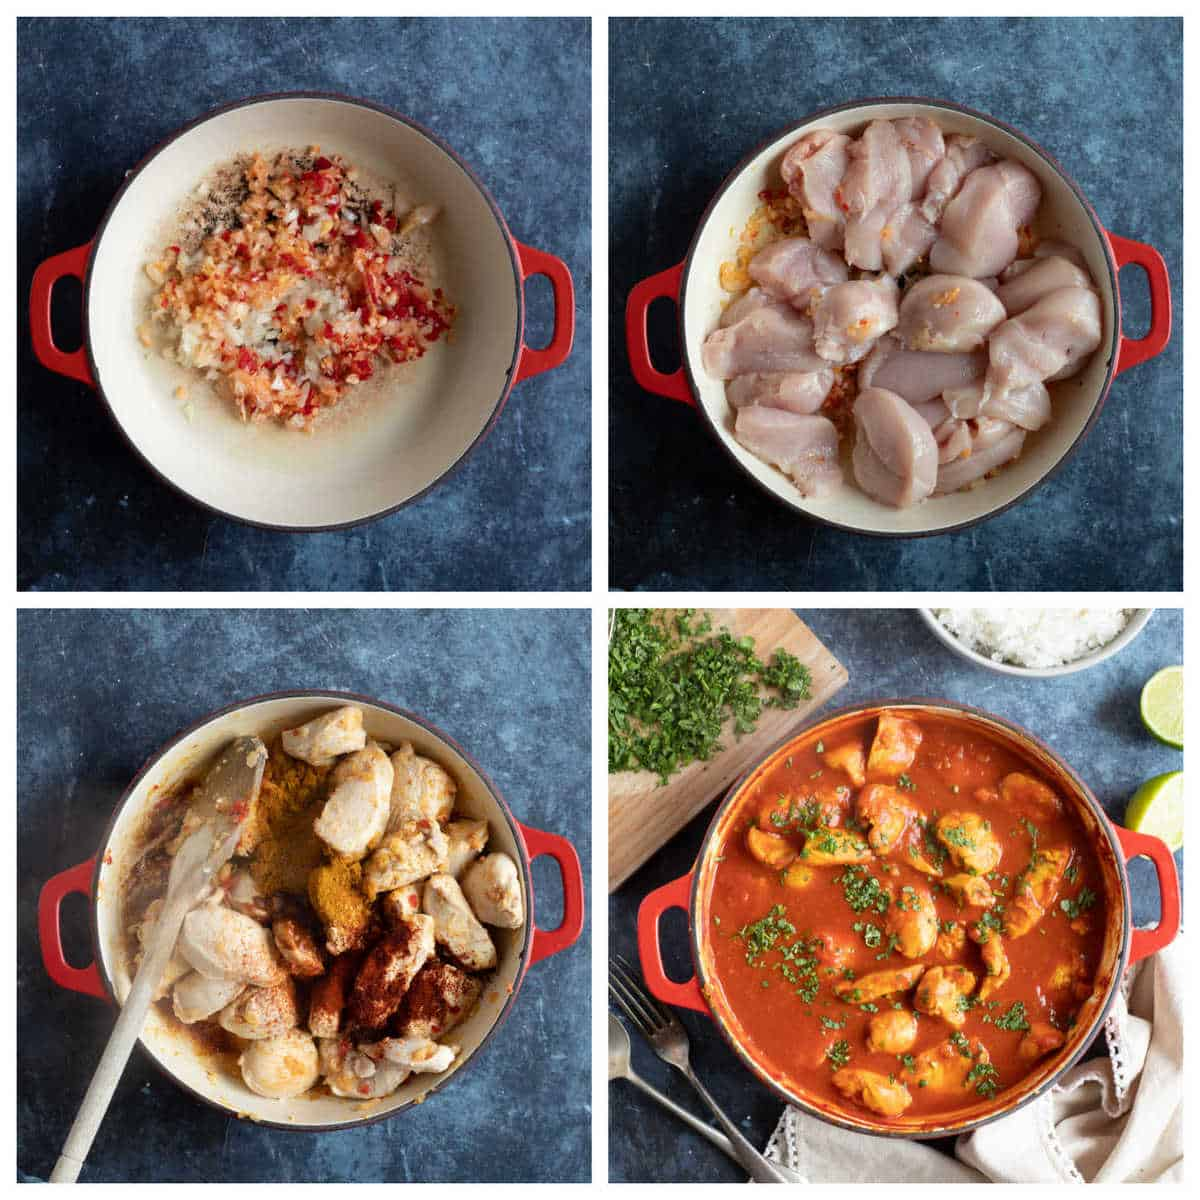 Step by step photo instructions for making chicken pathia.